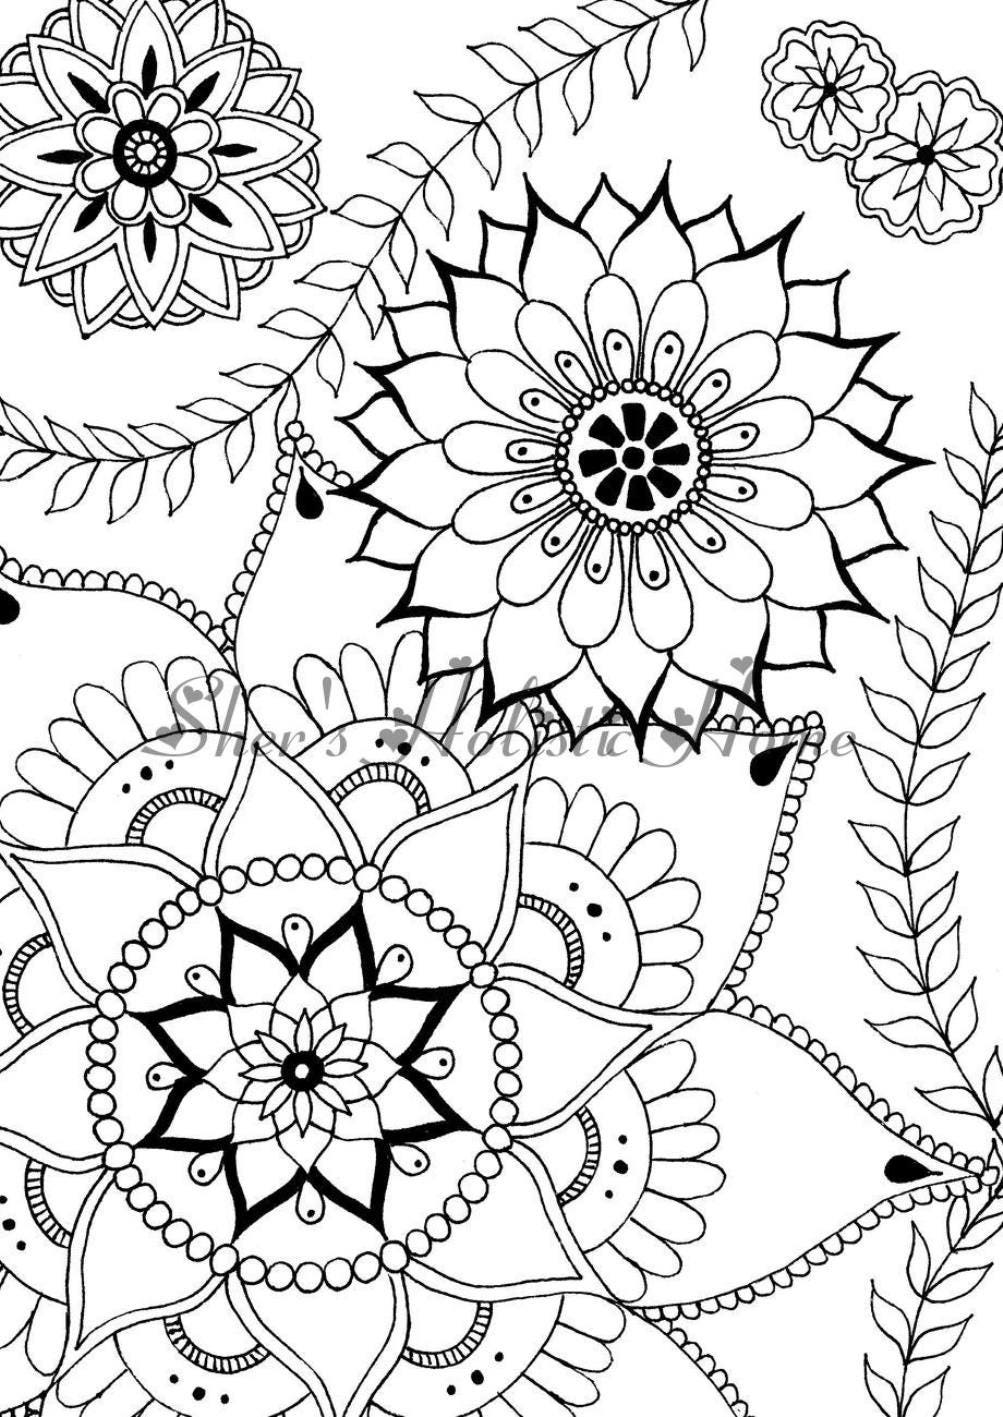 Flower coloring page mandala coloring page flower drawing | Etsy